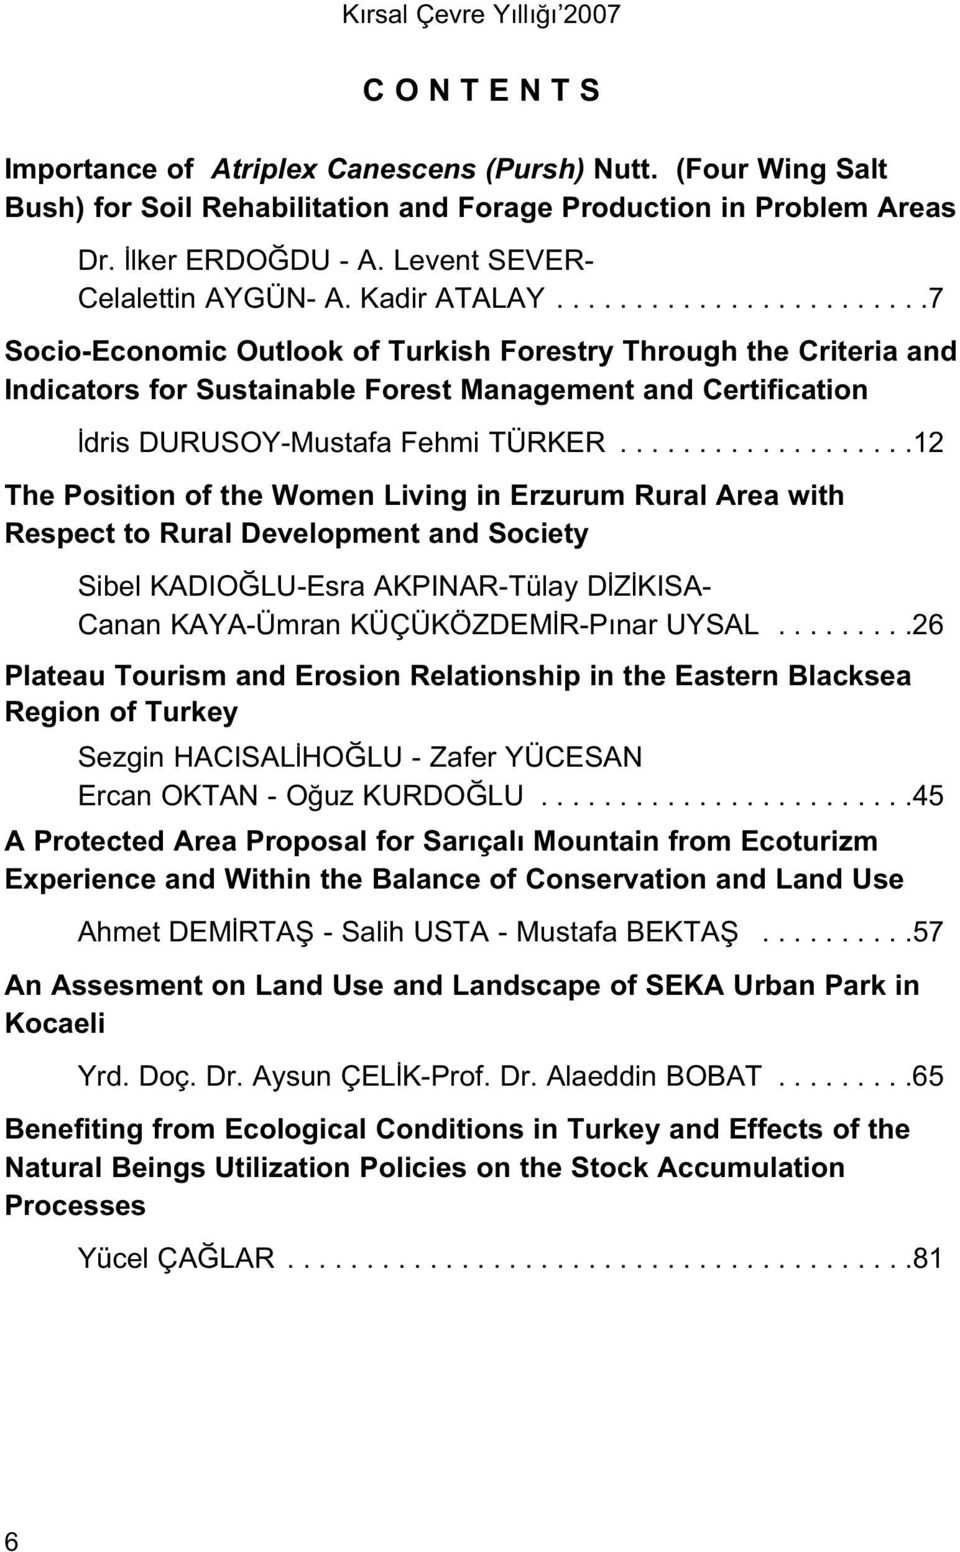 .......................7 Socio-Economic Outlook of Turkish Forestry Through the Criteria and Indicators for Sustainable Forest Management and Certification dris DURUSOY-Mustafa Fehmi TÜRKER.